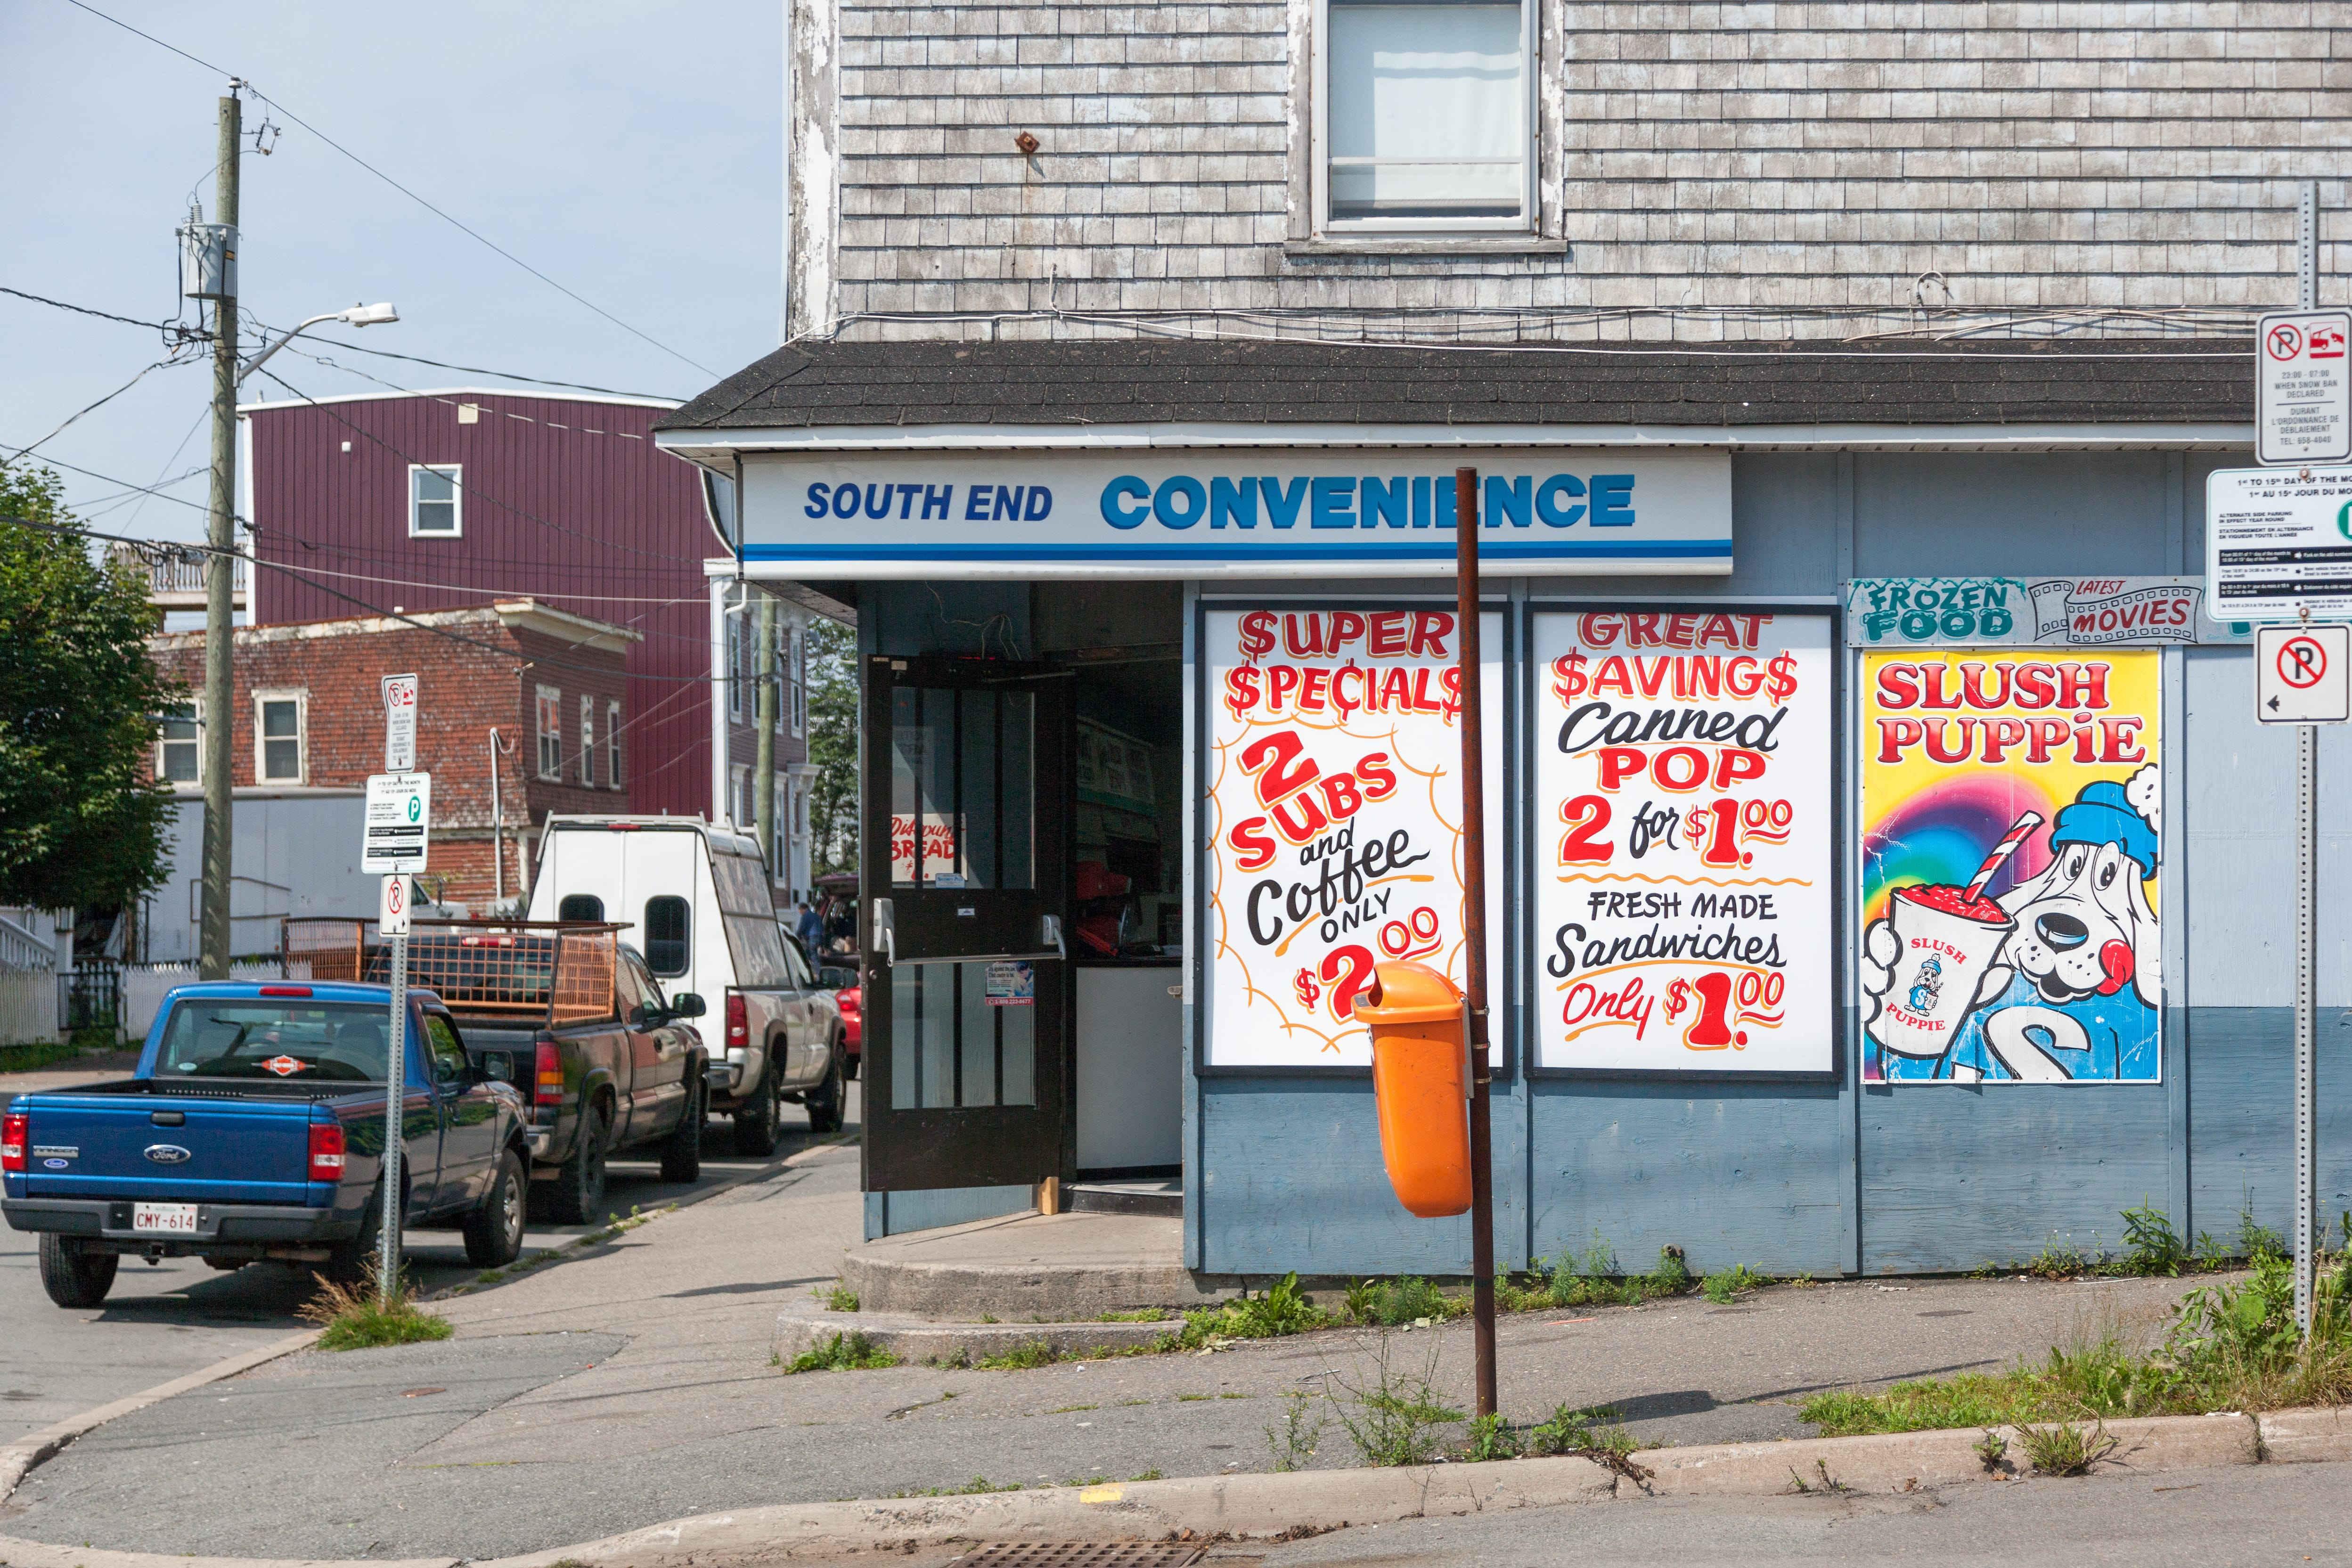 A photograph depicting South End Convenience Saint John